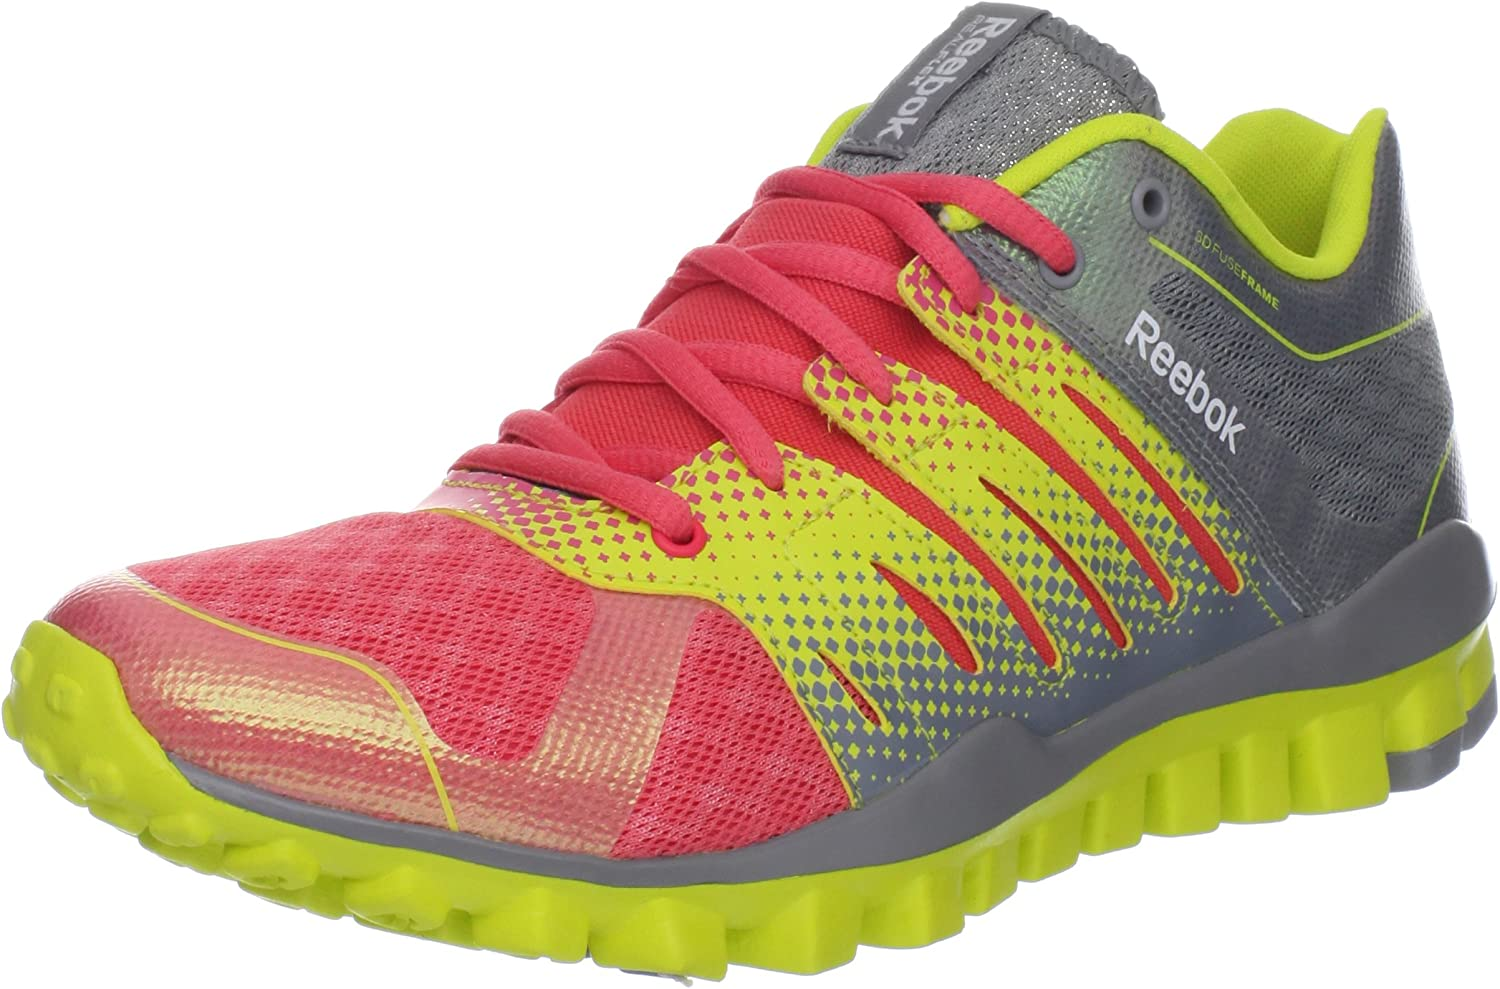 strength training shoes for women